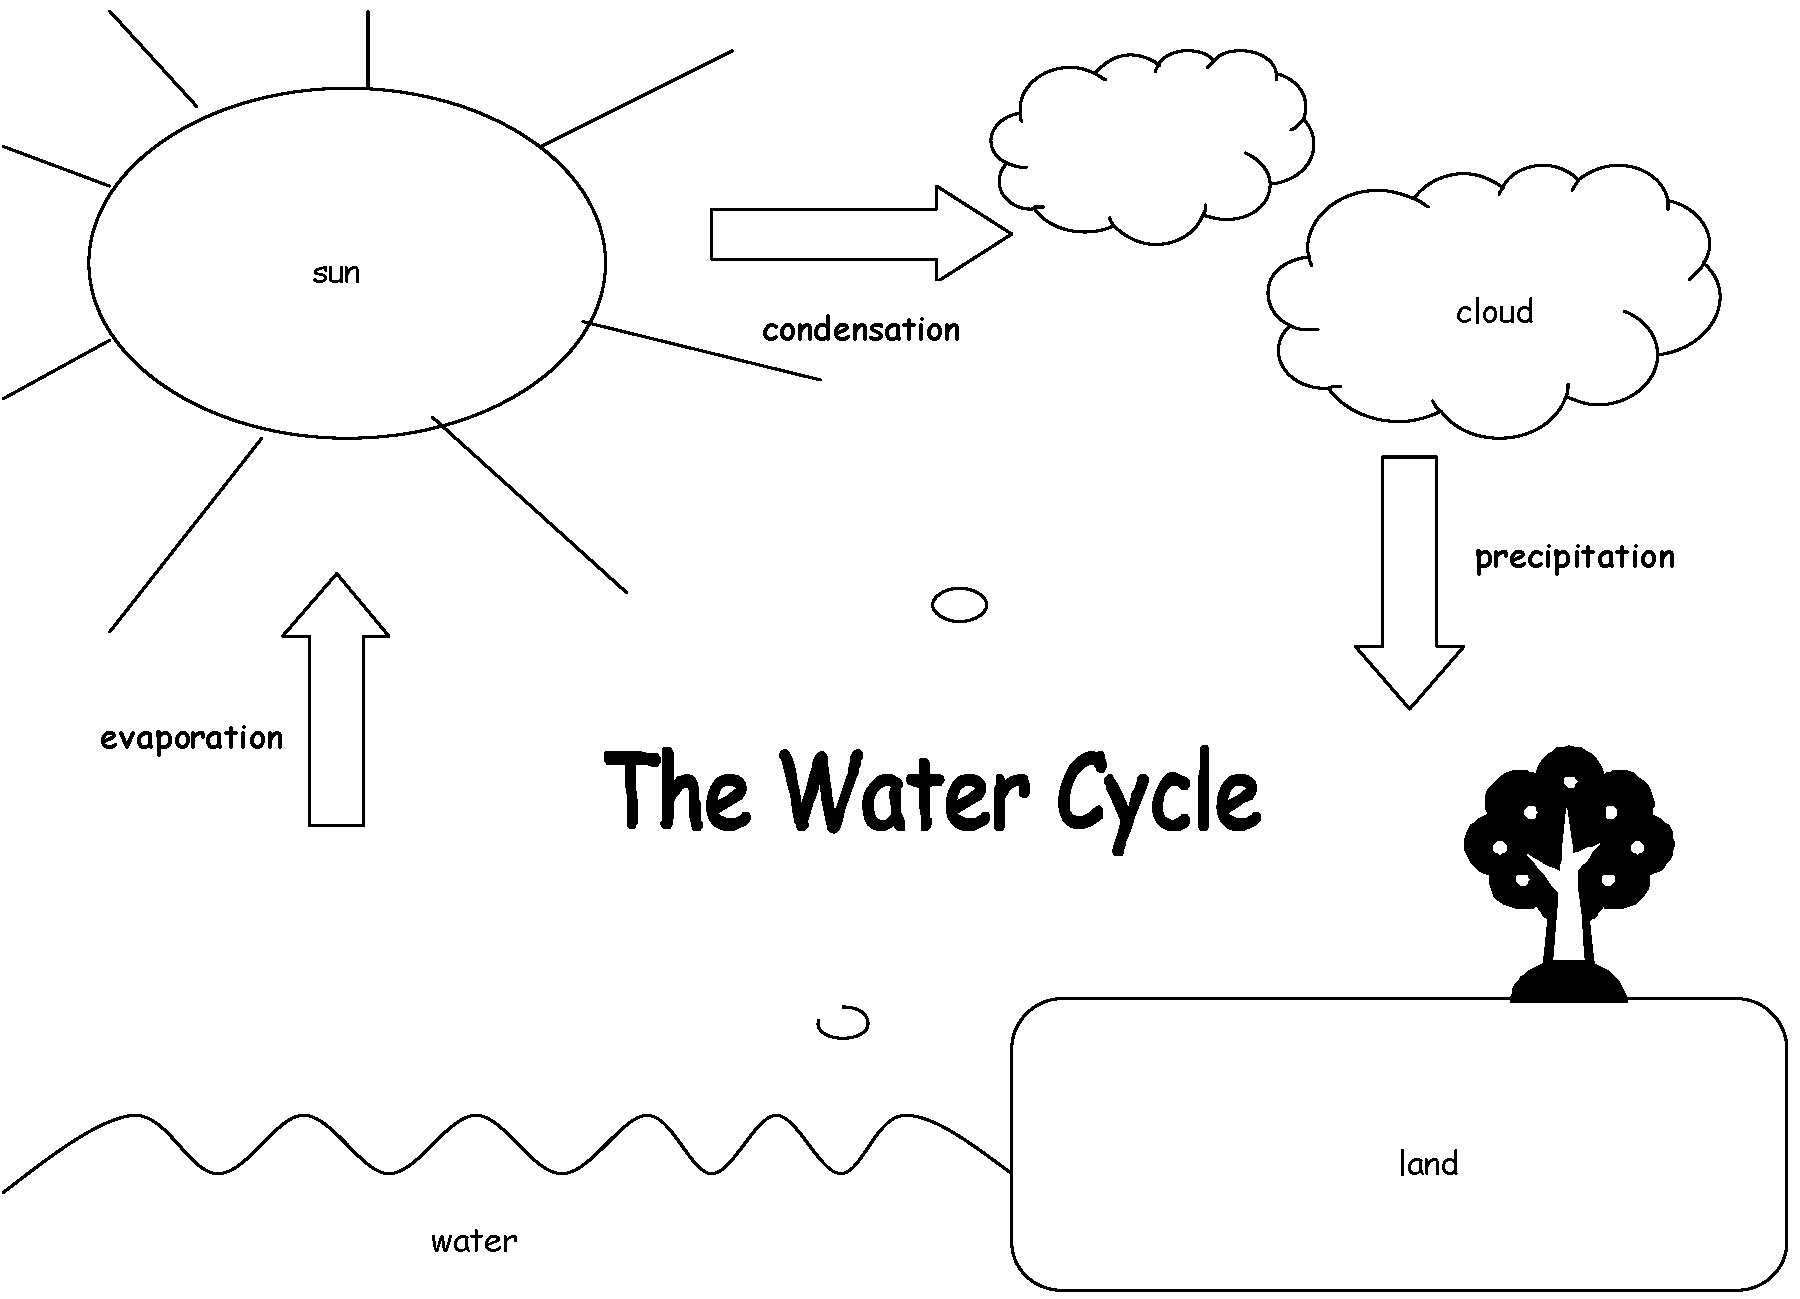 Water cycle clipart in black and white.